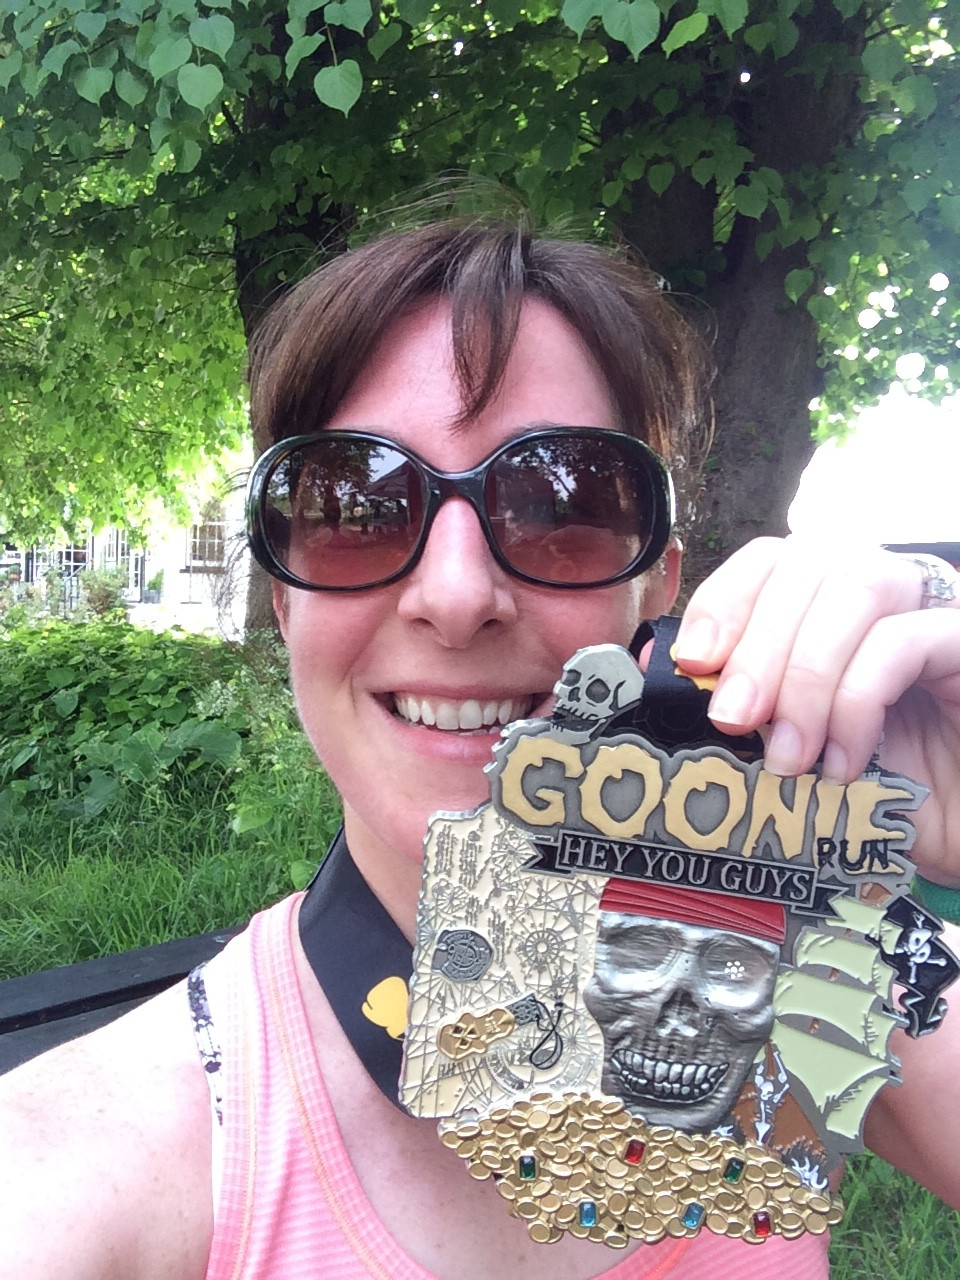 Goonie Run, finisher medal, running, fitness